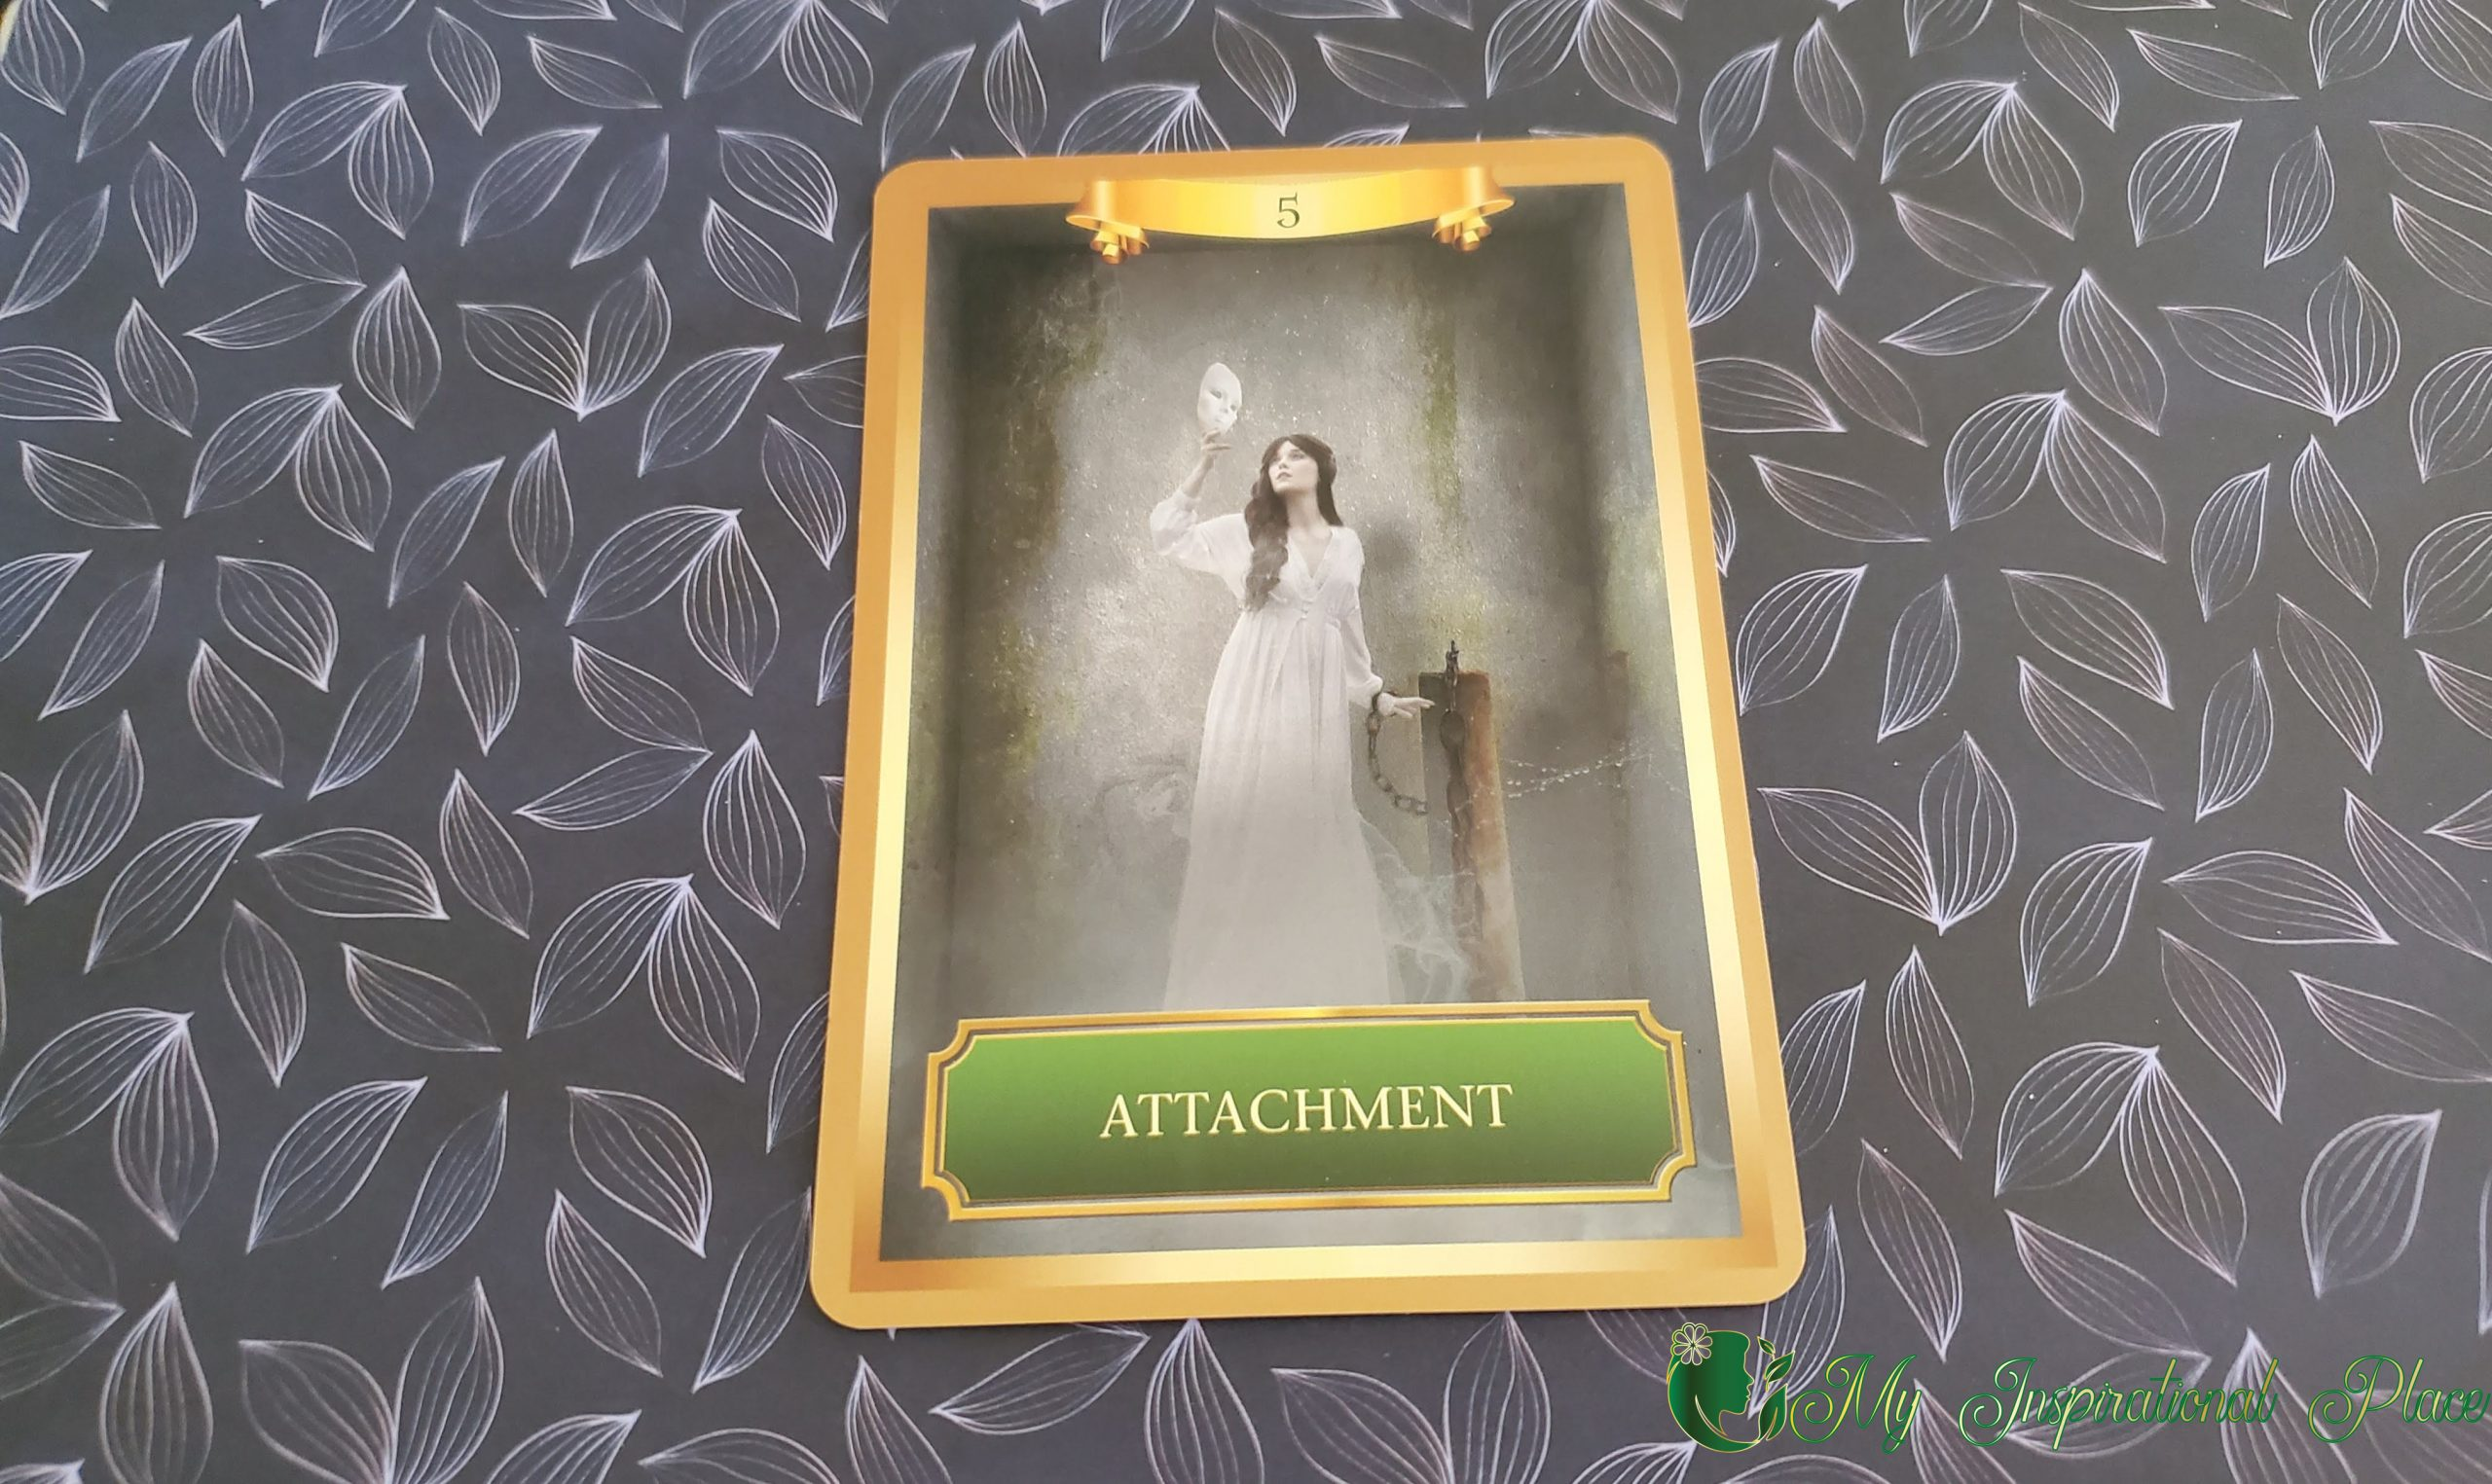 Card of the Day for April 27, 2020 – Attachment